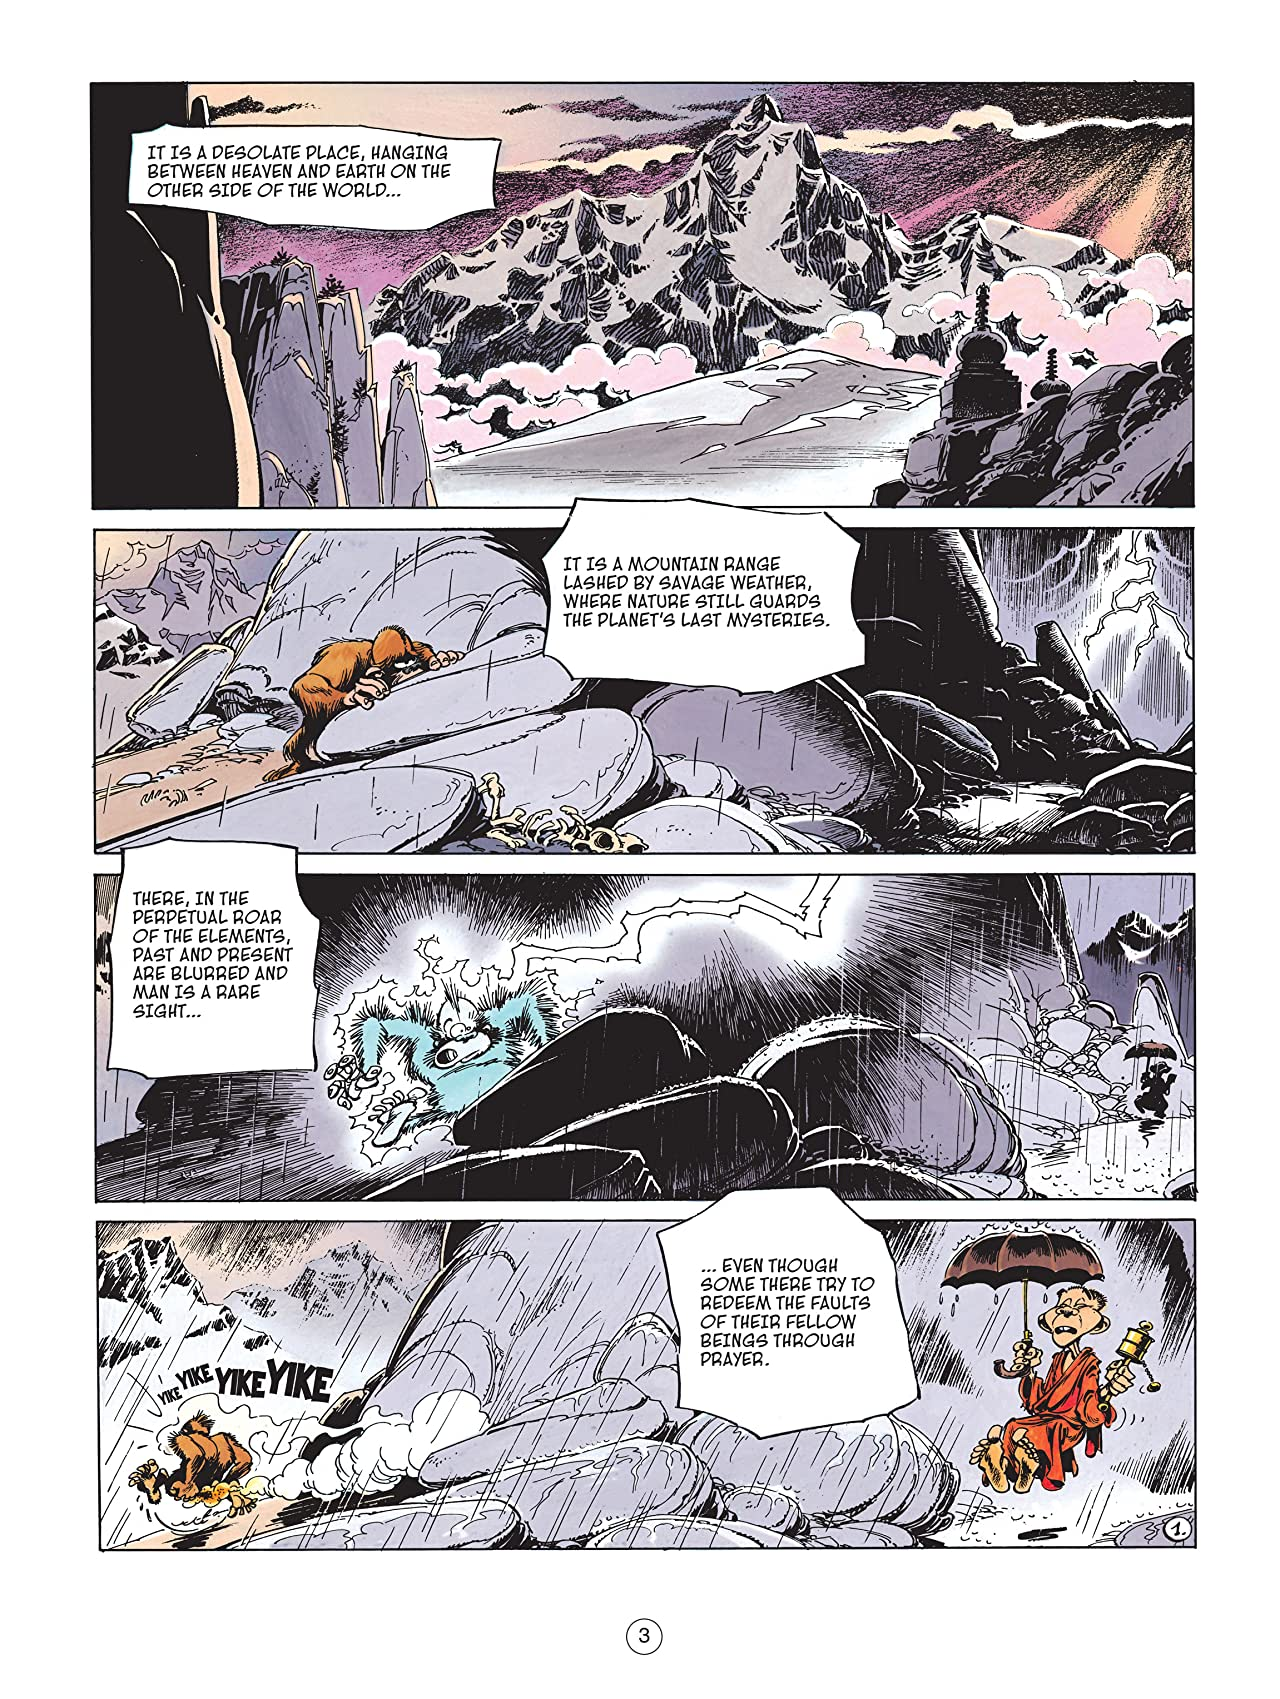 Spirou & Fantasio Vol. 4: Valley of the Exiles